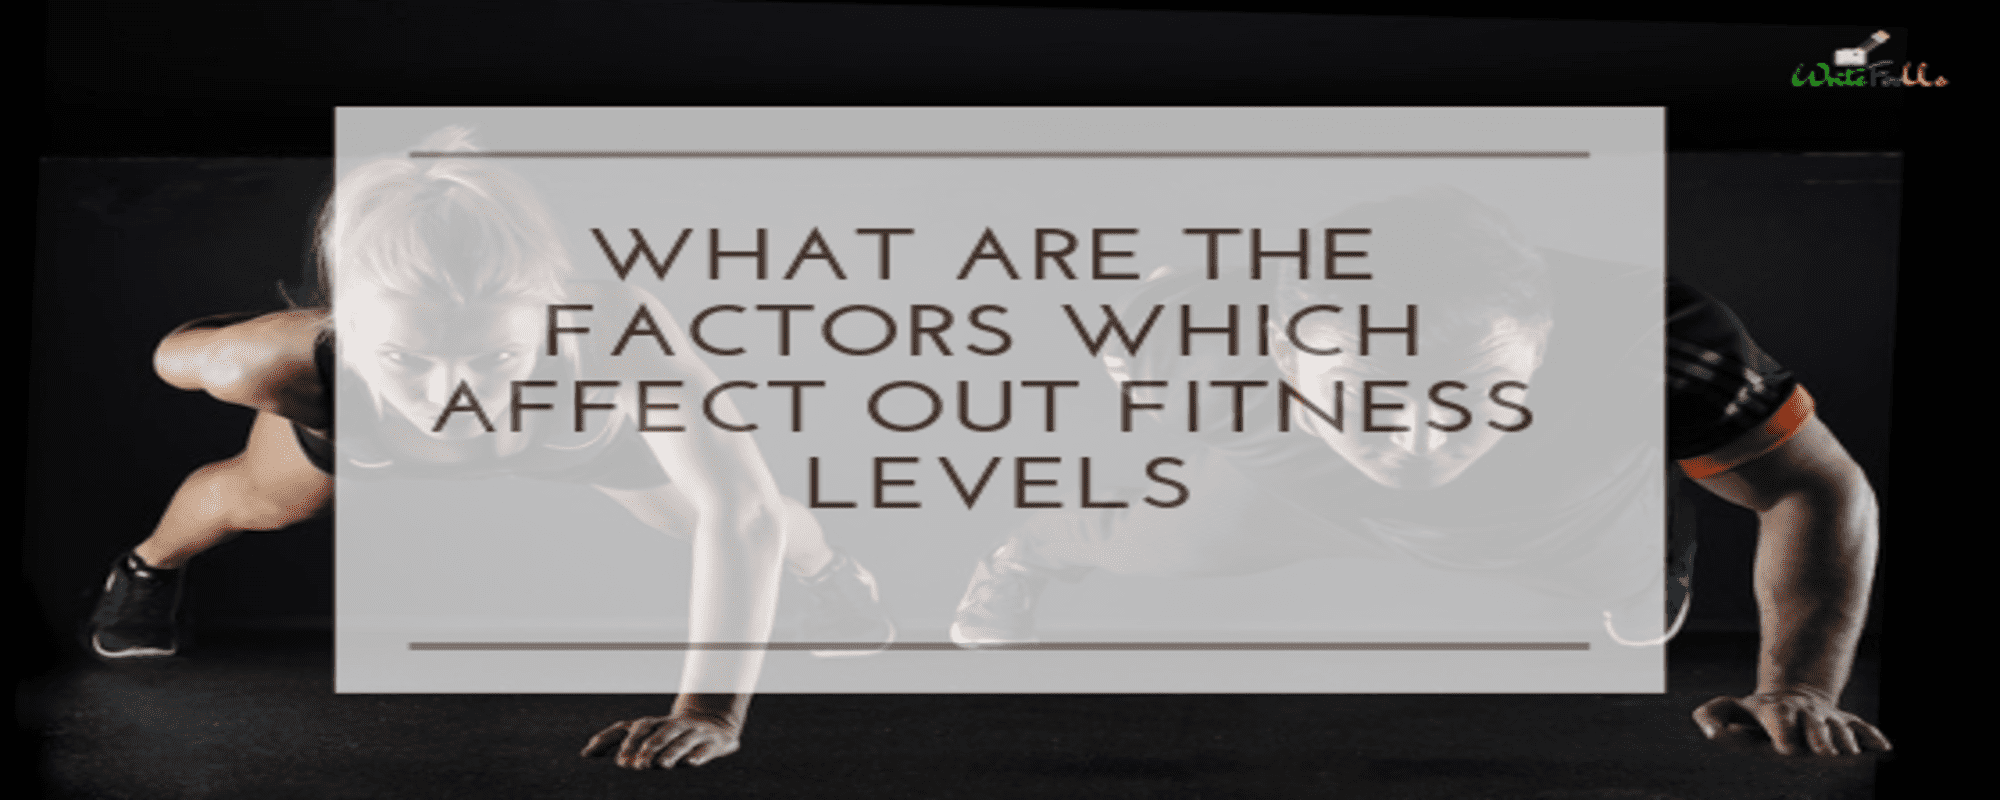 Factors-of-fitness-level